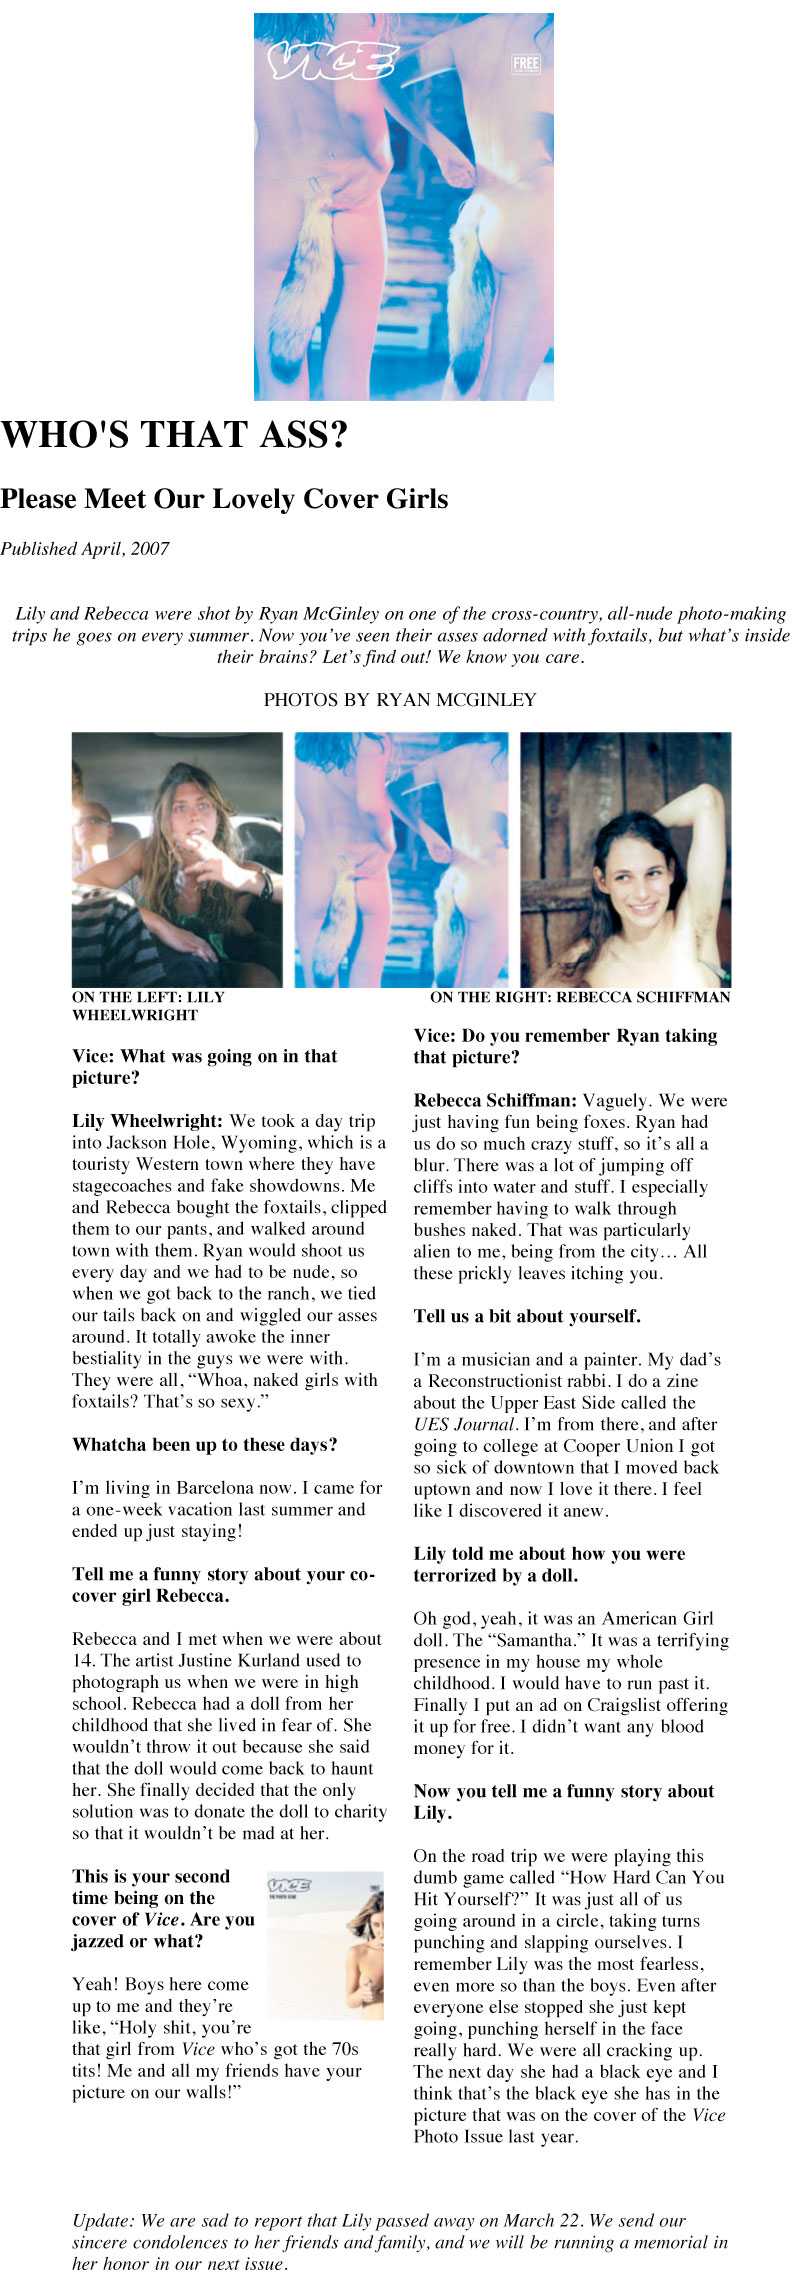 Rebecca Schiffman in Vice Magazine. Interview with Rebecca Schiffman and Lily Wheelwright by Amy Kellner. Photographs by Ryan McGinley.